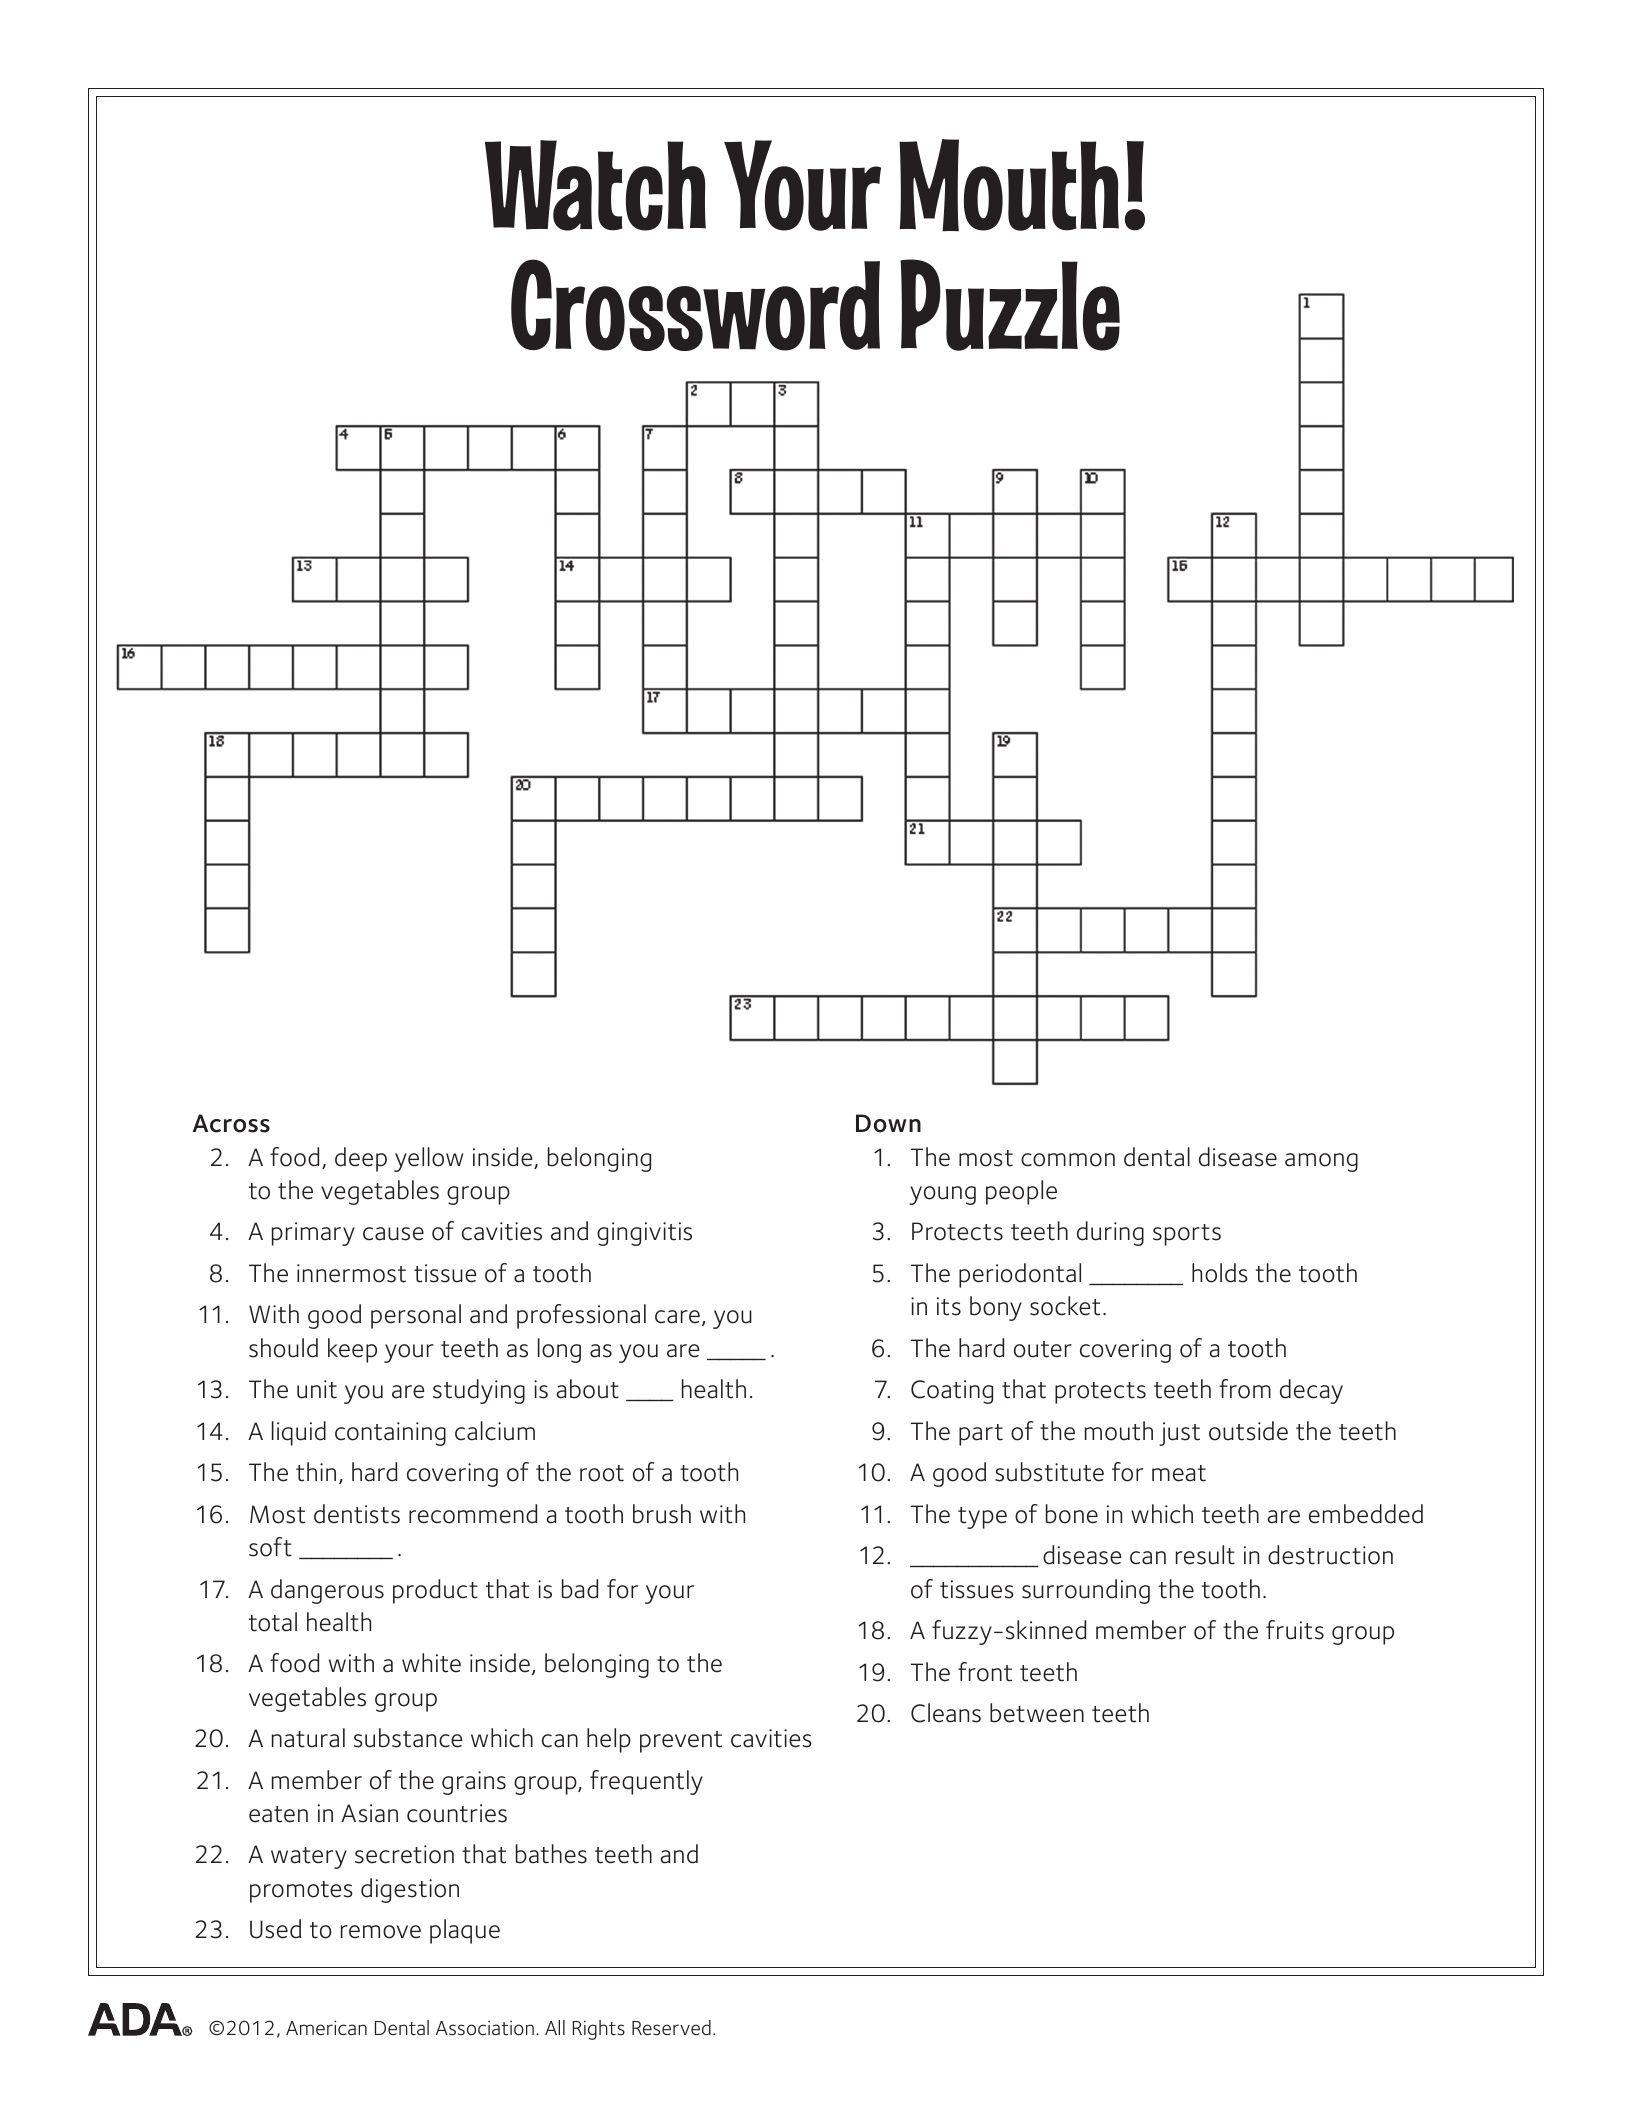 11 Dental Health Activities Puzzle Fun (Printable) | Dental Hygiene - Printable Crossword Puzzles For Mental Health